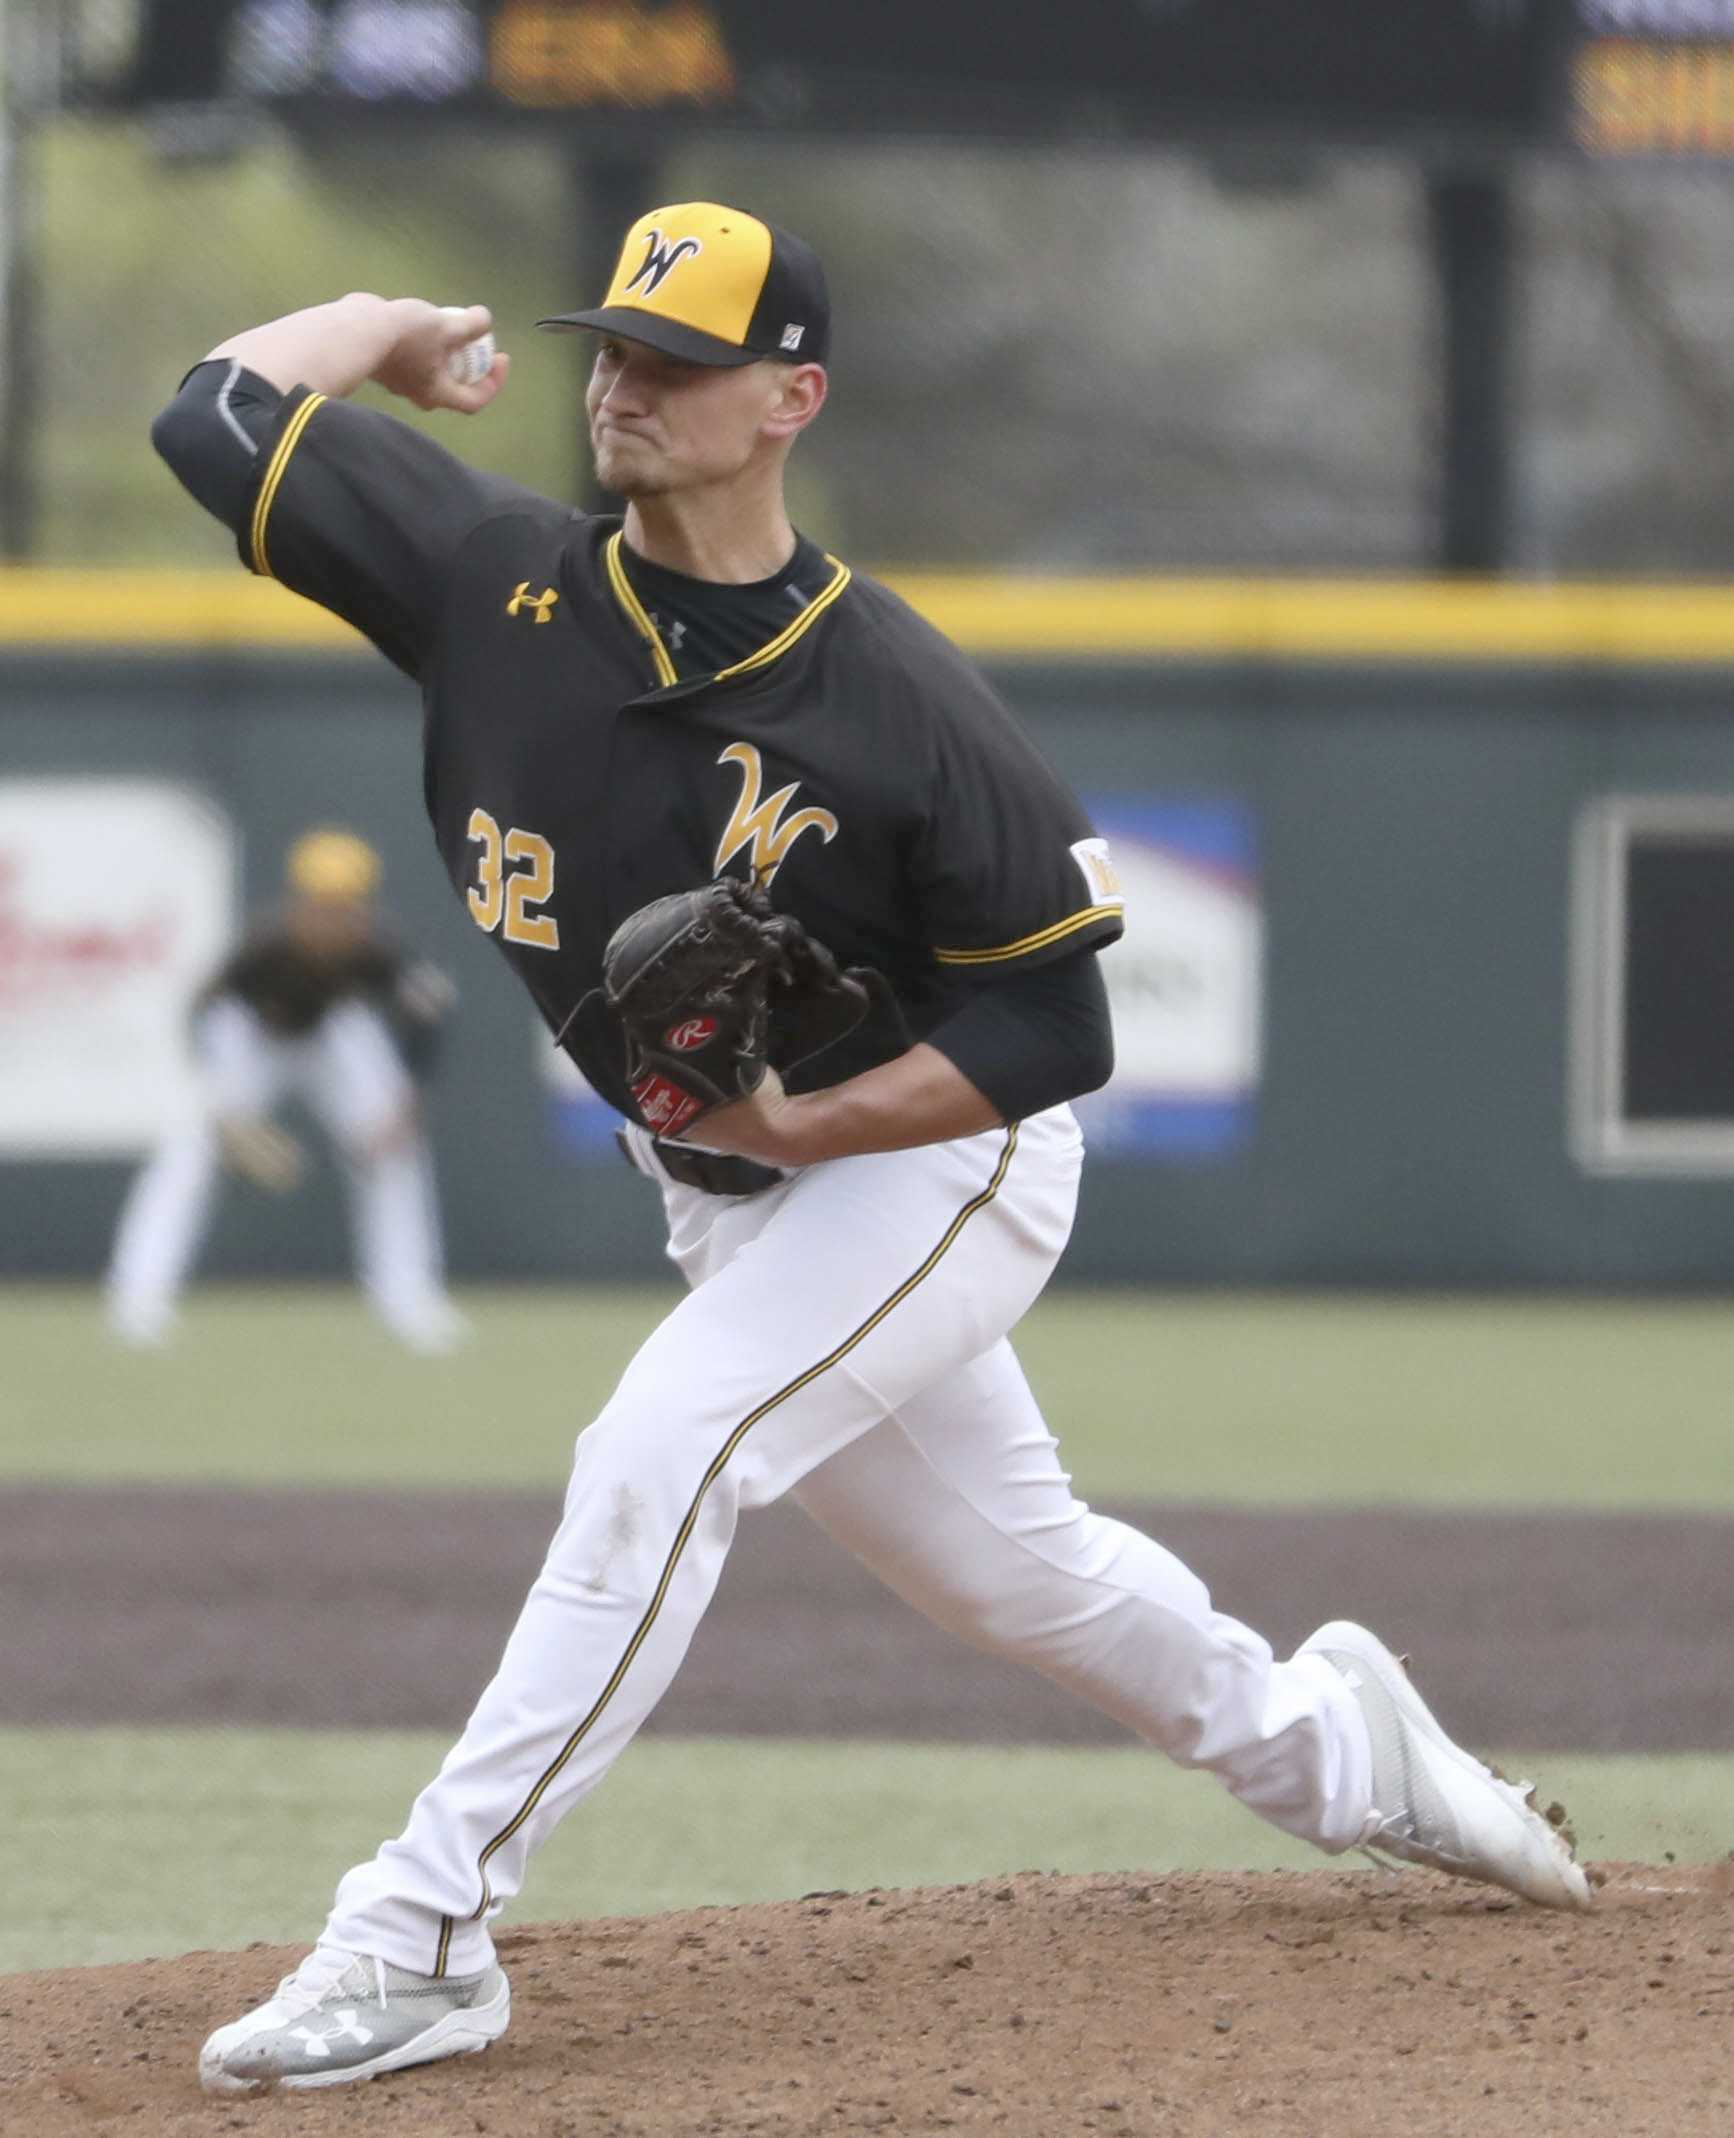 Wichita State pitcher Zach Lewis pitches to Texas Tech batter in the second game of the three game home series in Eck Stadium. (Mar. 26, 2017)